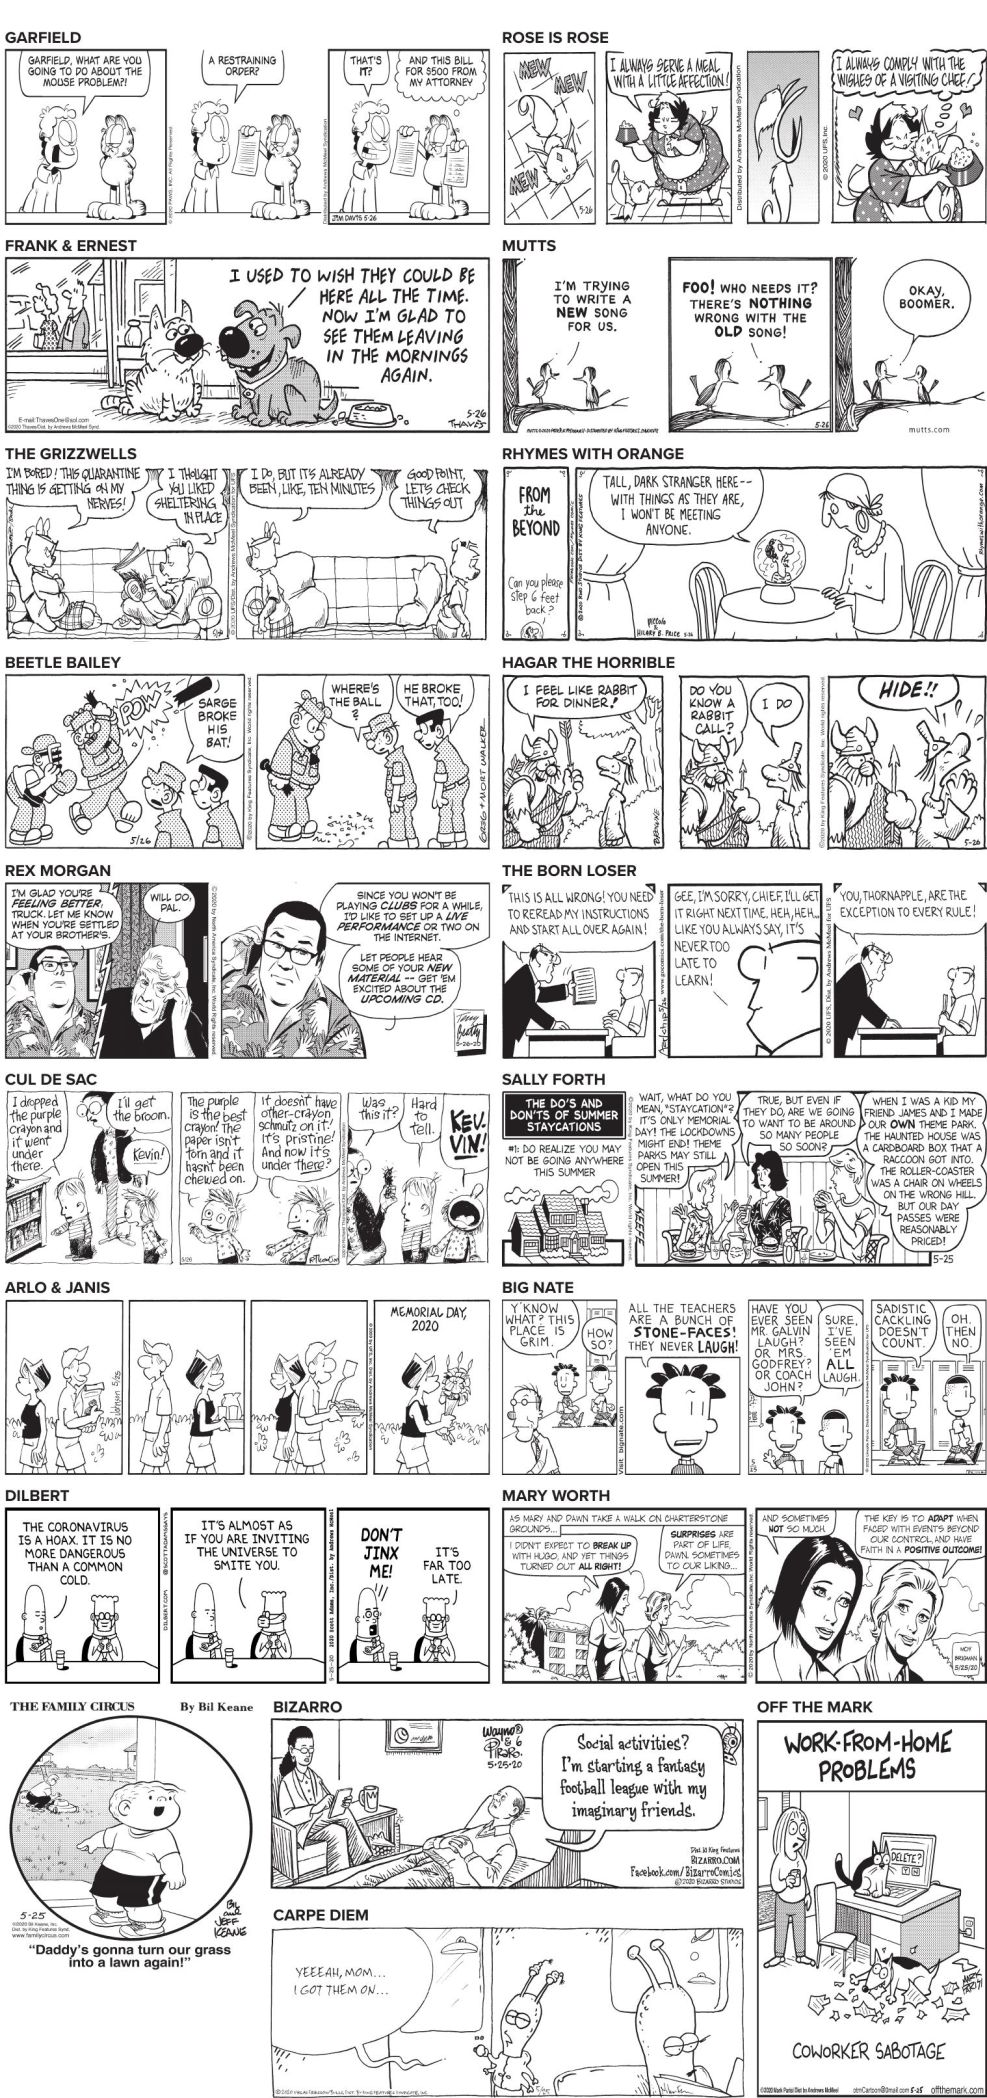 Tuesday May 26 2020 Comics And Puzzles Daily Comics Timeswv Com Join crista cowan for a look at the obituary times daily index and the u.s. tuesday may 26 2020 comics and